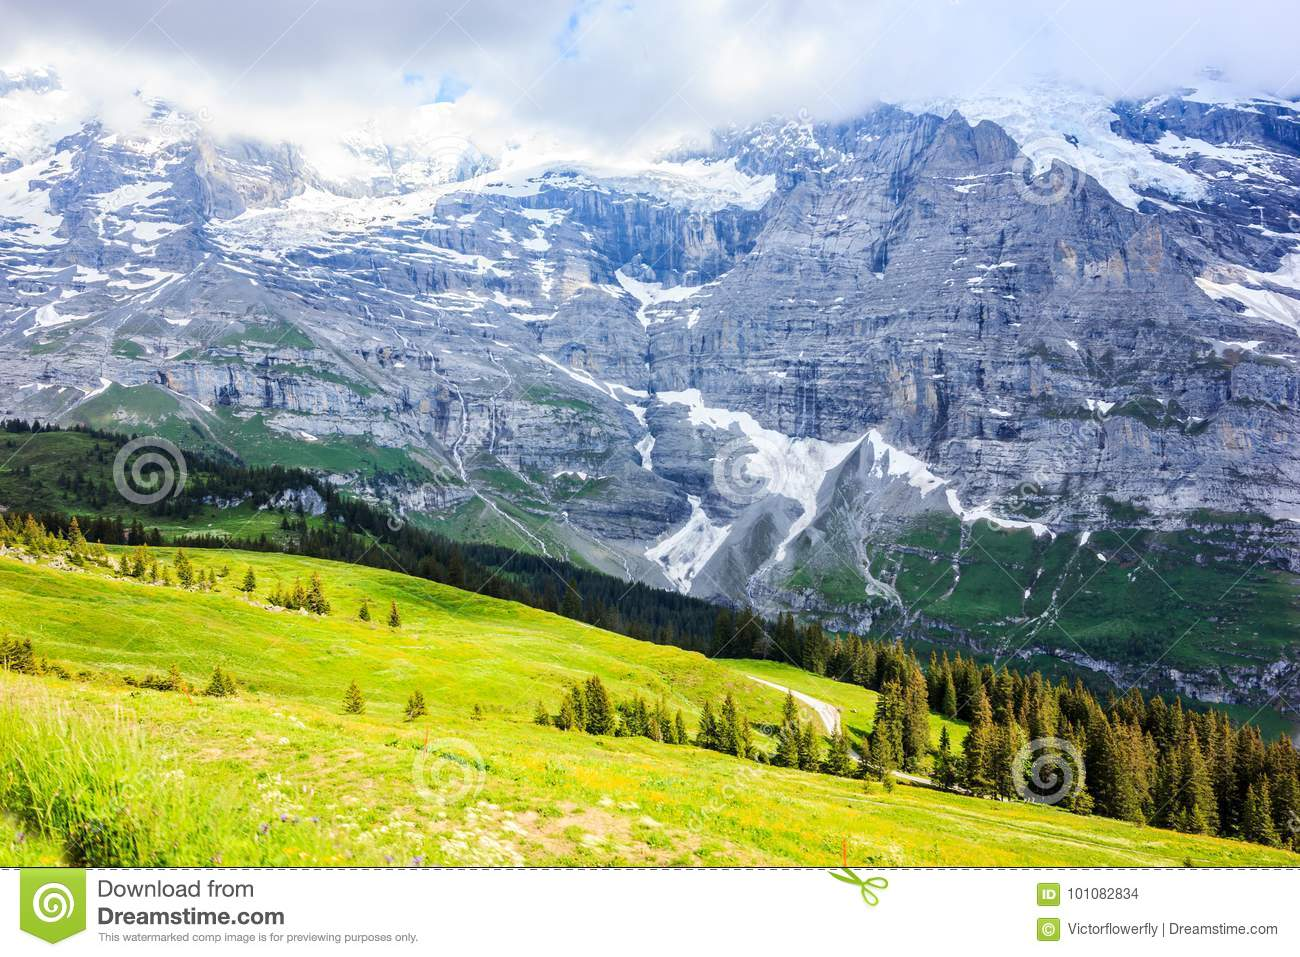 Idyllic Natural European Swiss Alpine Scenery Background, Jungfrau Region, Lauterbrunnen, Bernese Oberland, Bern, Switzerland